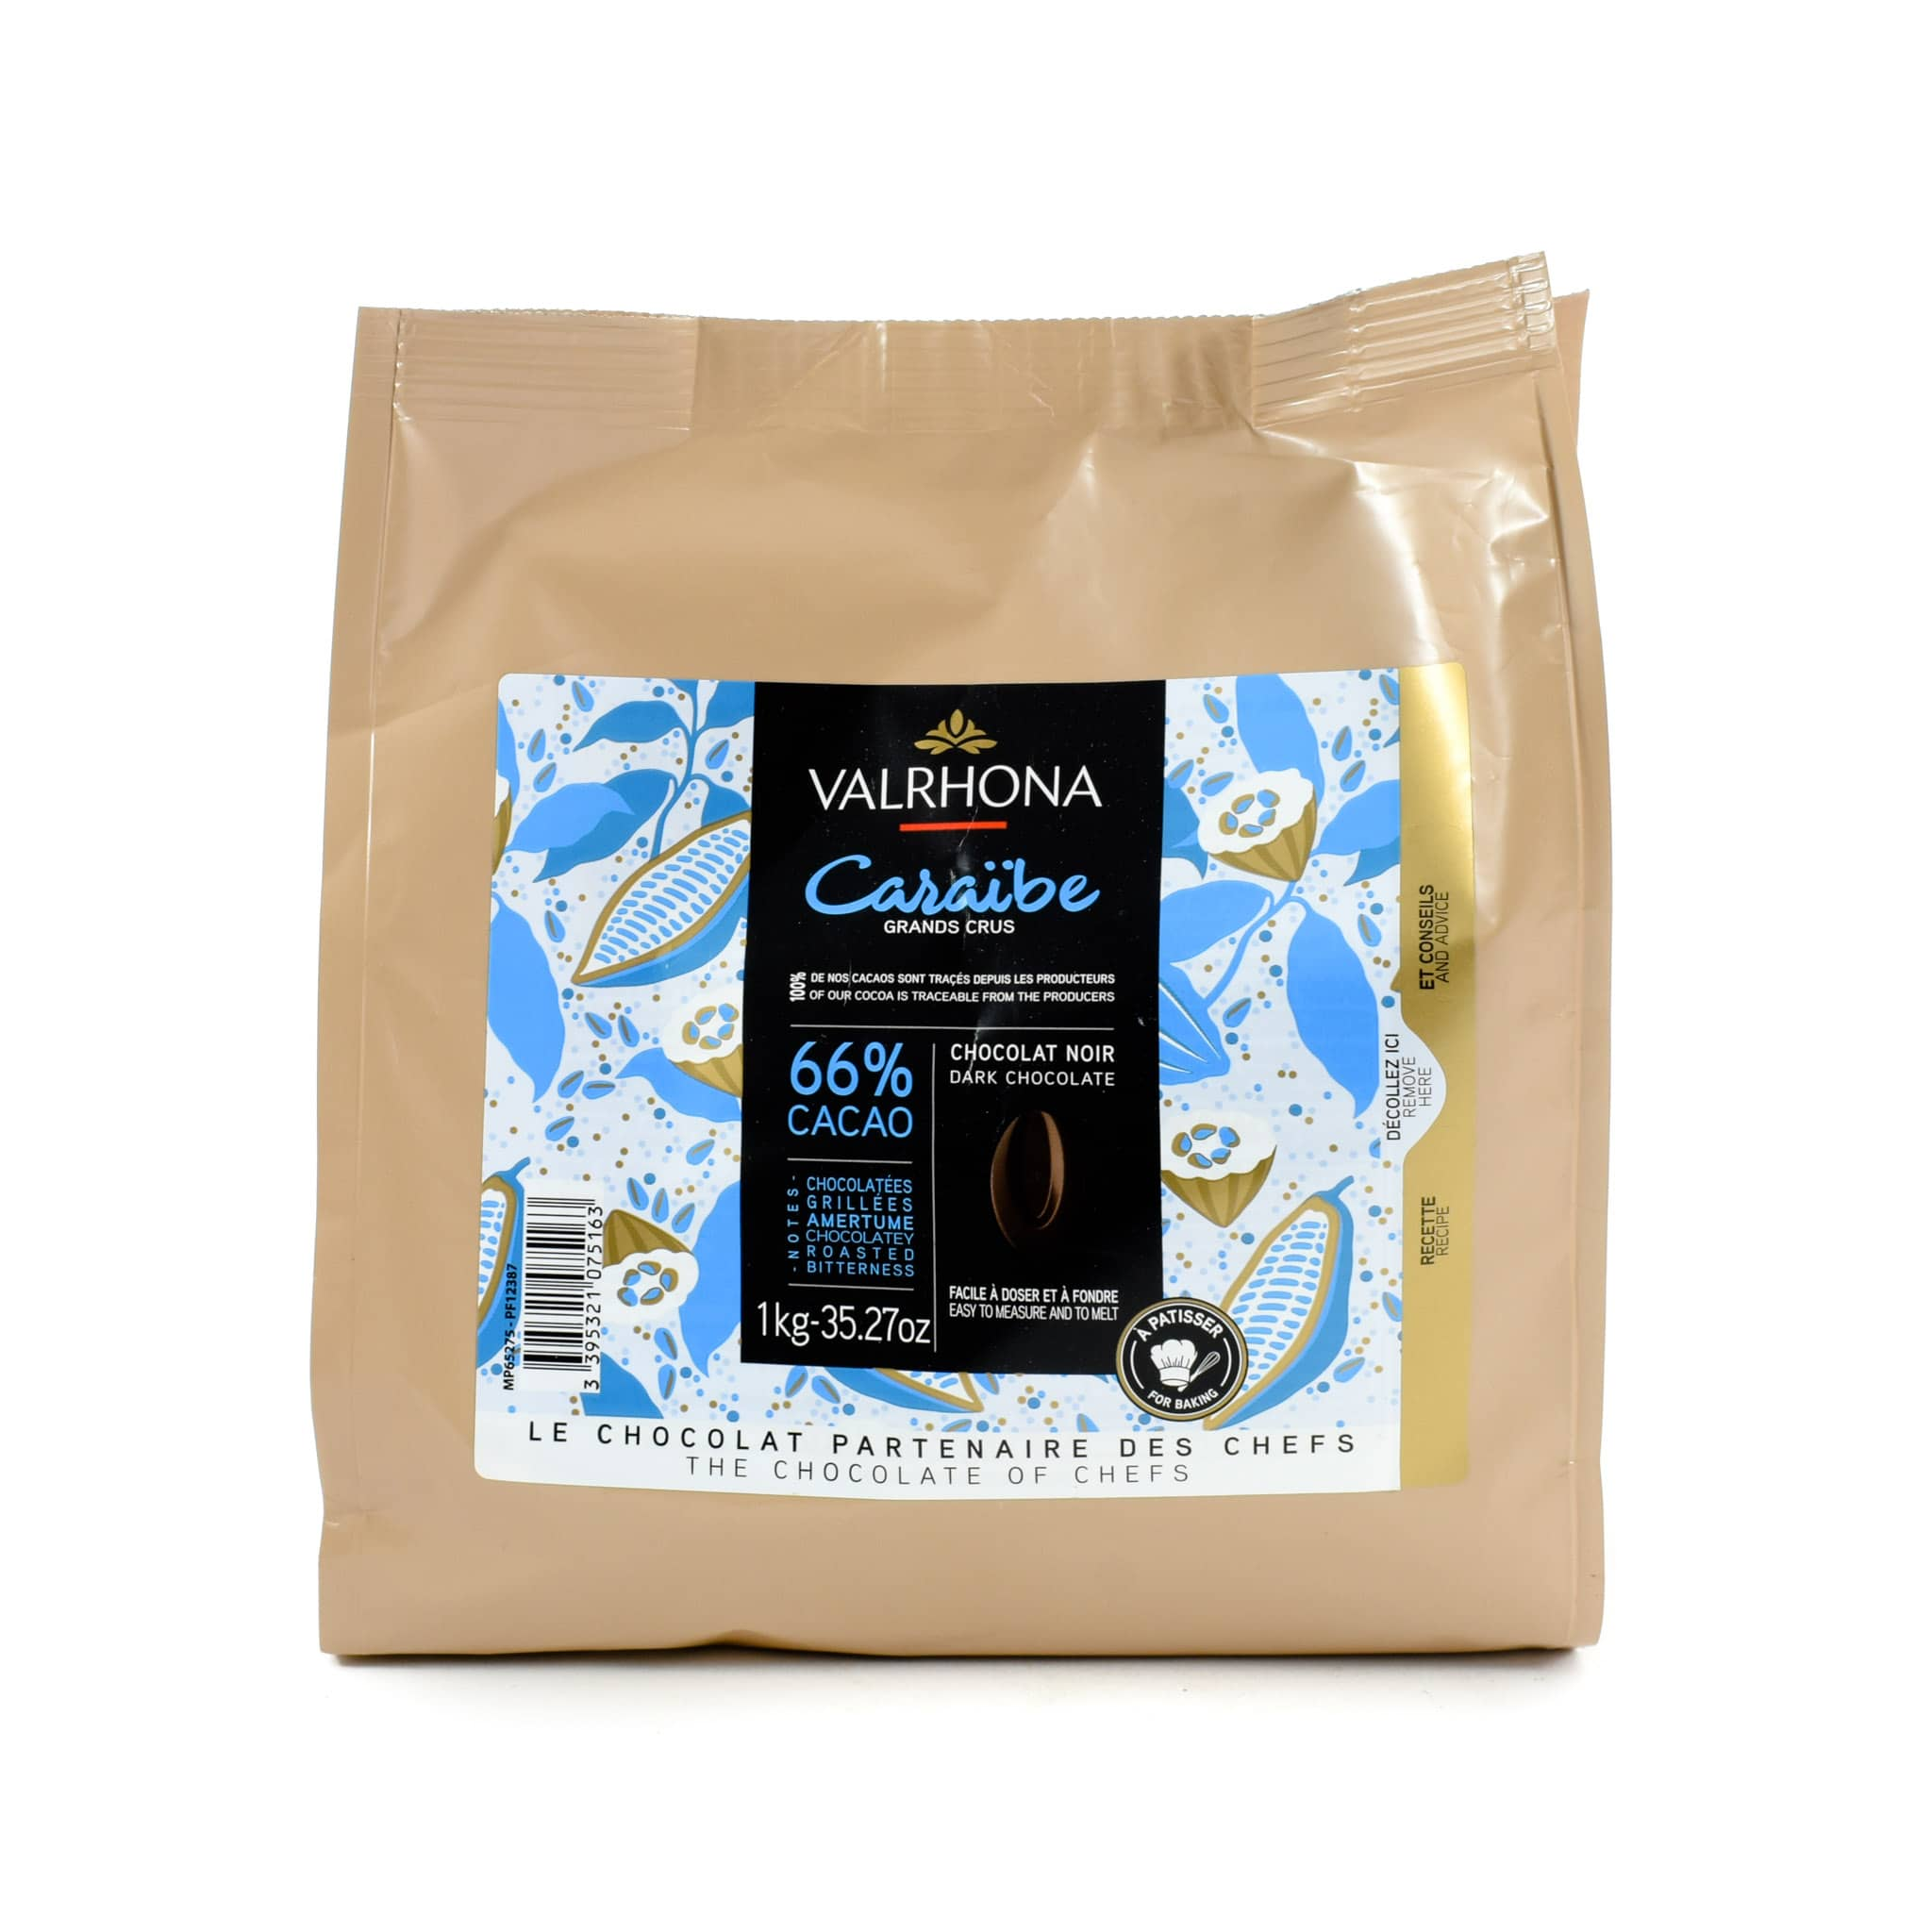 Valrhona Caraibe 66% Dark Chocolate Chips 1kg